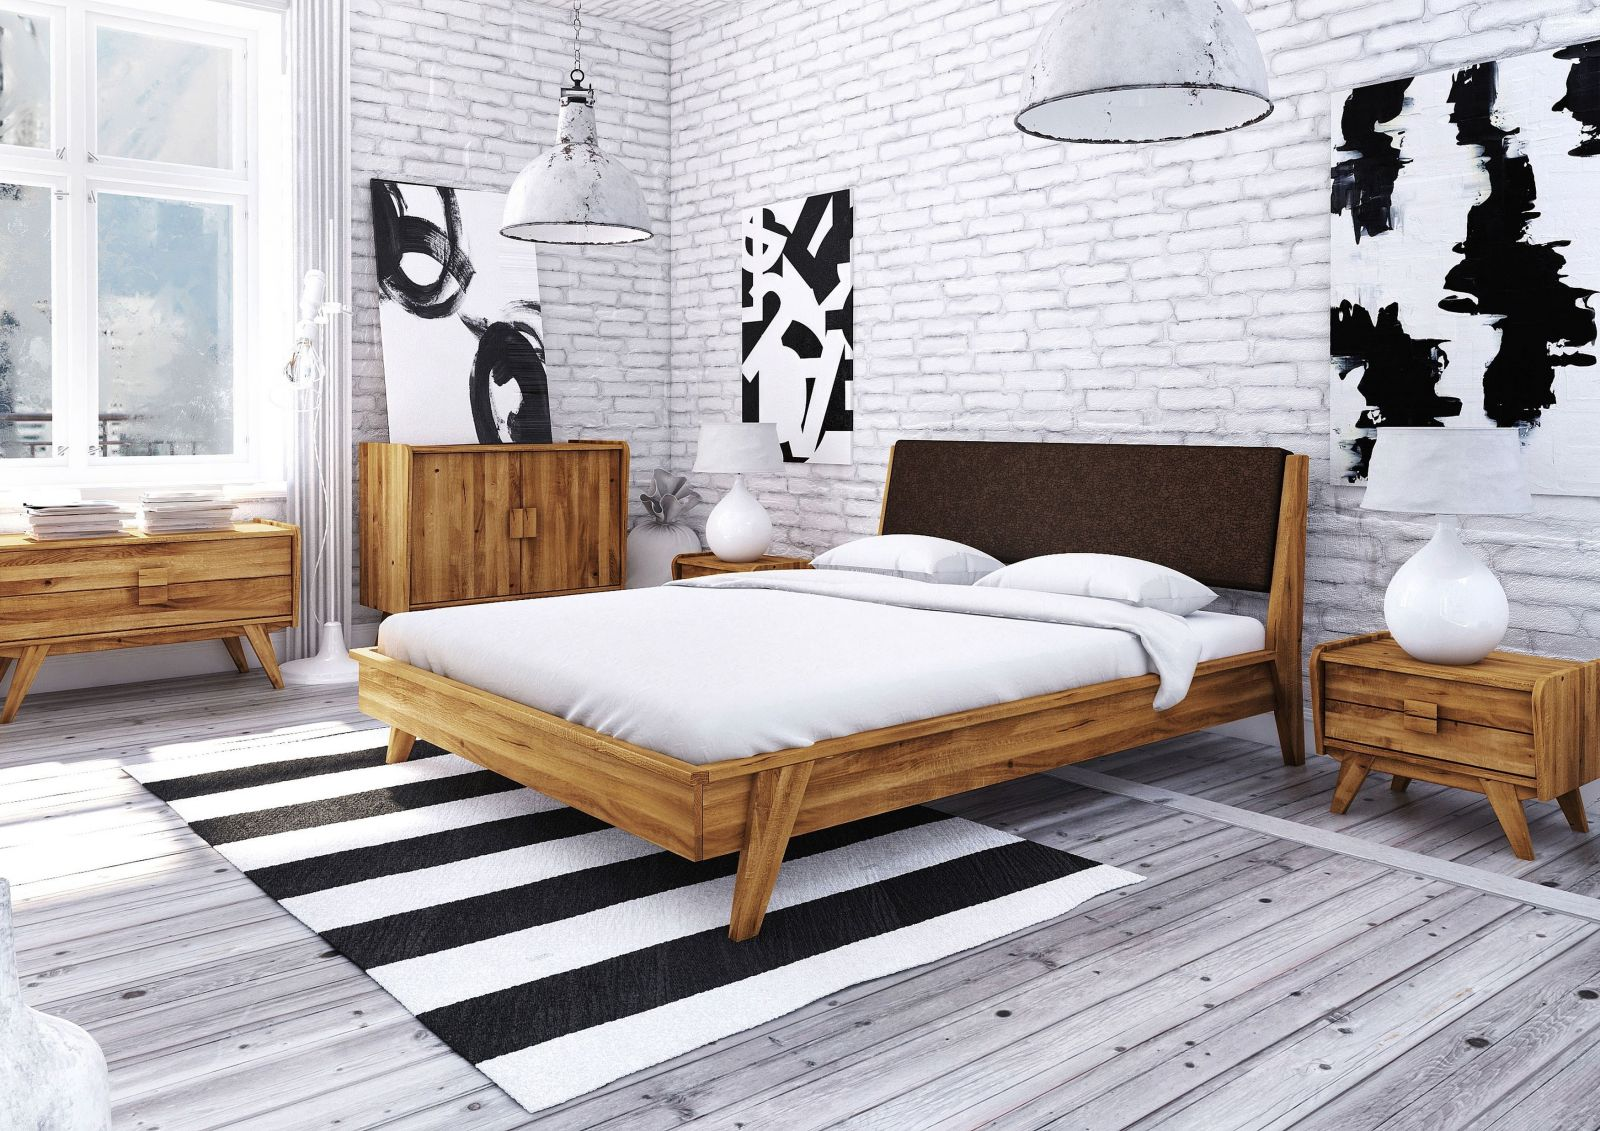 bett wildeiche 160x200 cm braun aus massivholz massivholzm bel. Black Bedroom Furniture Sets. Home Design Ideas